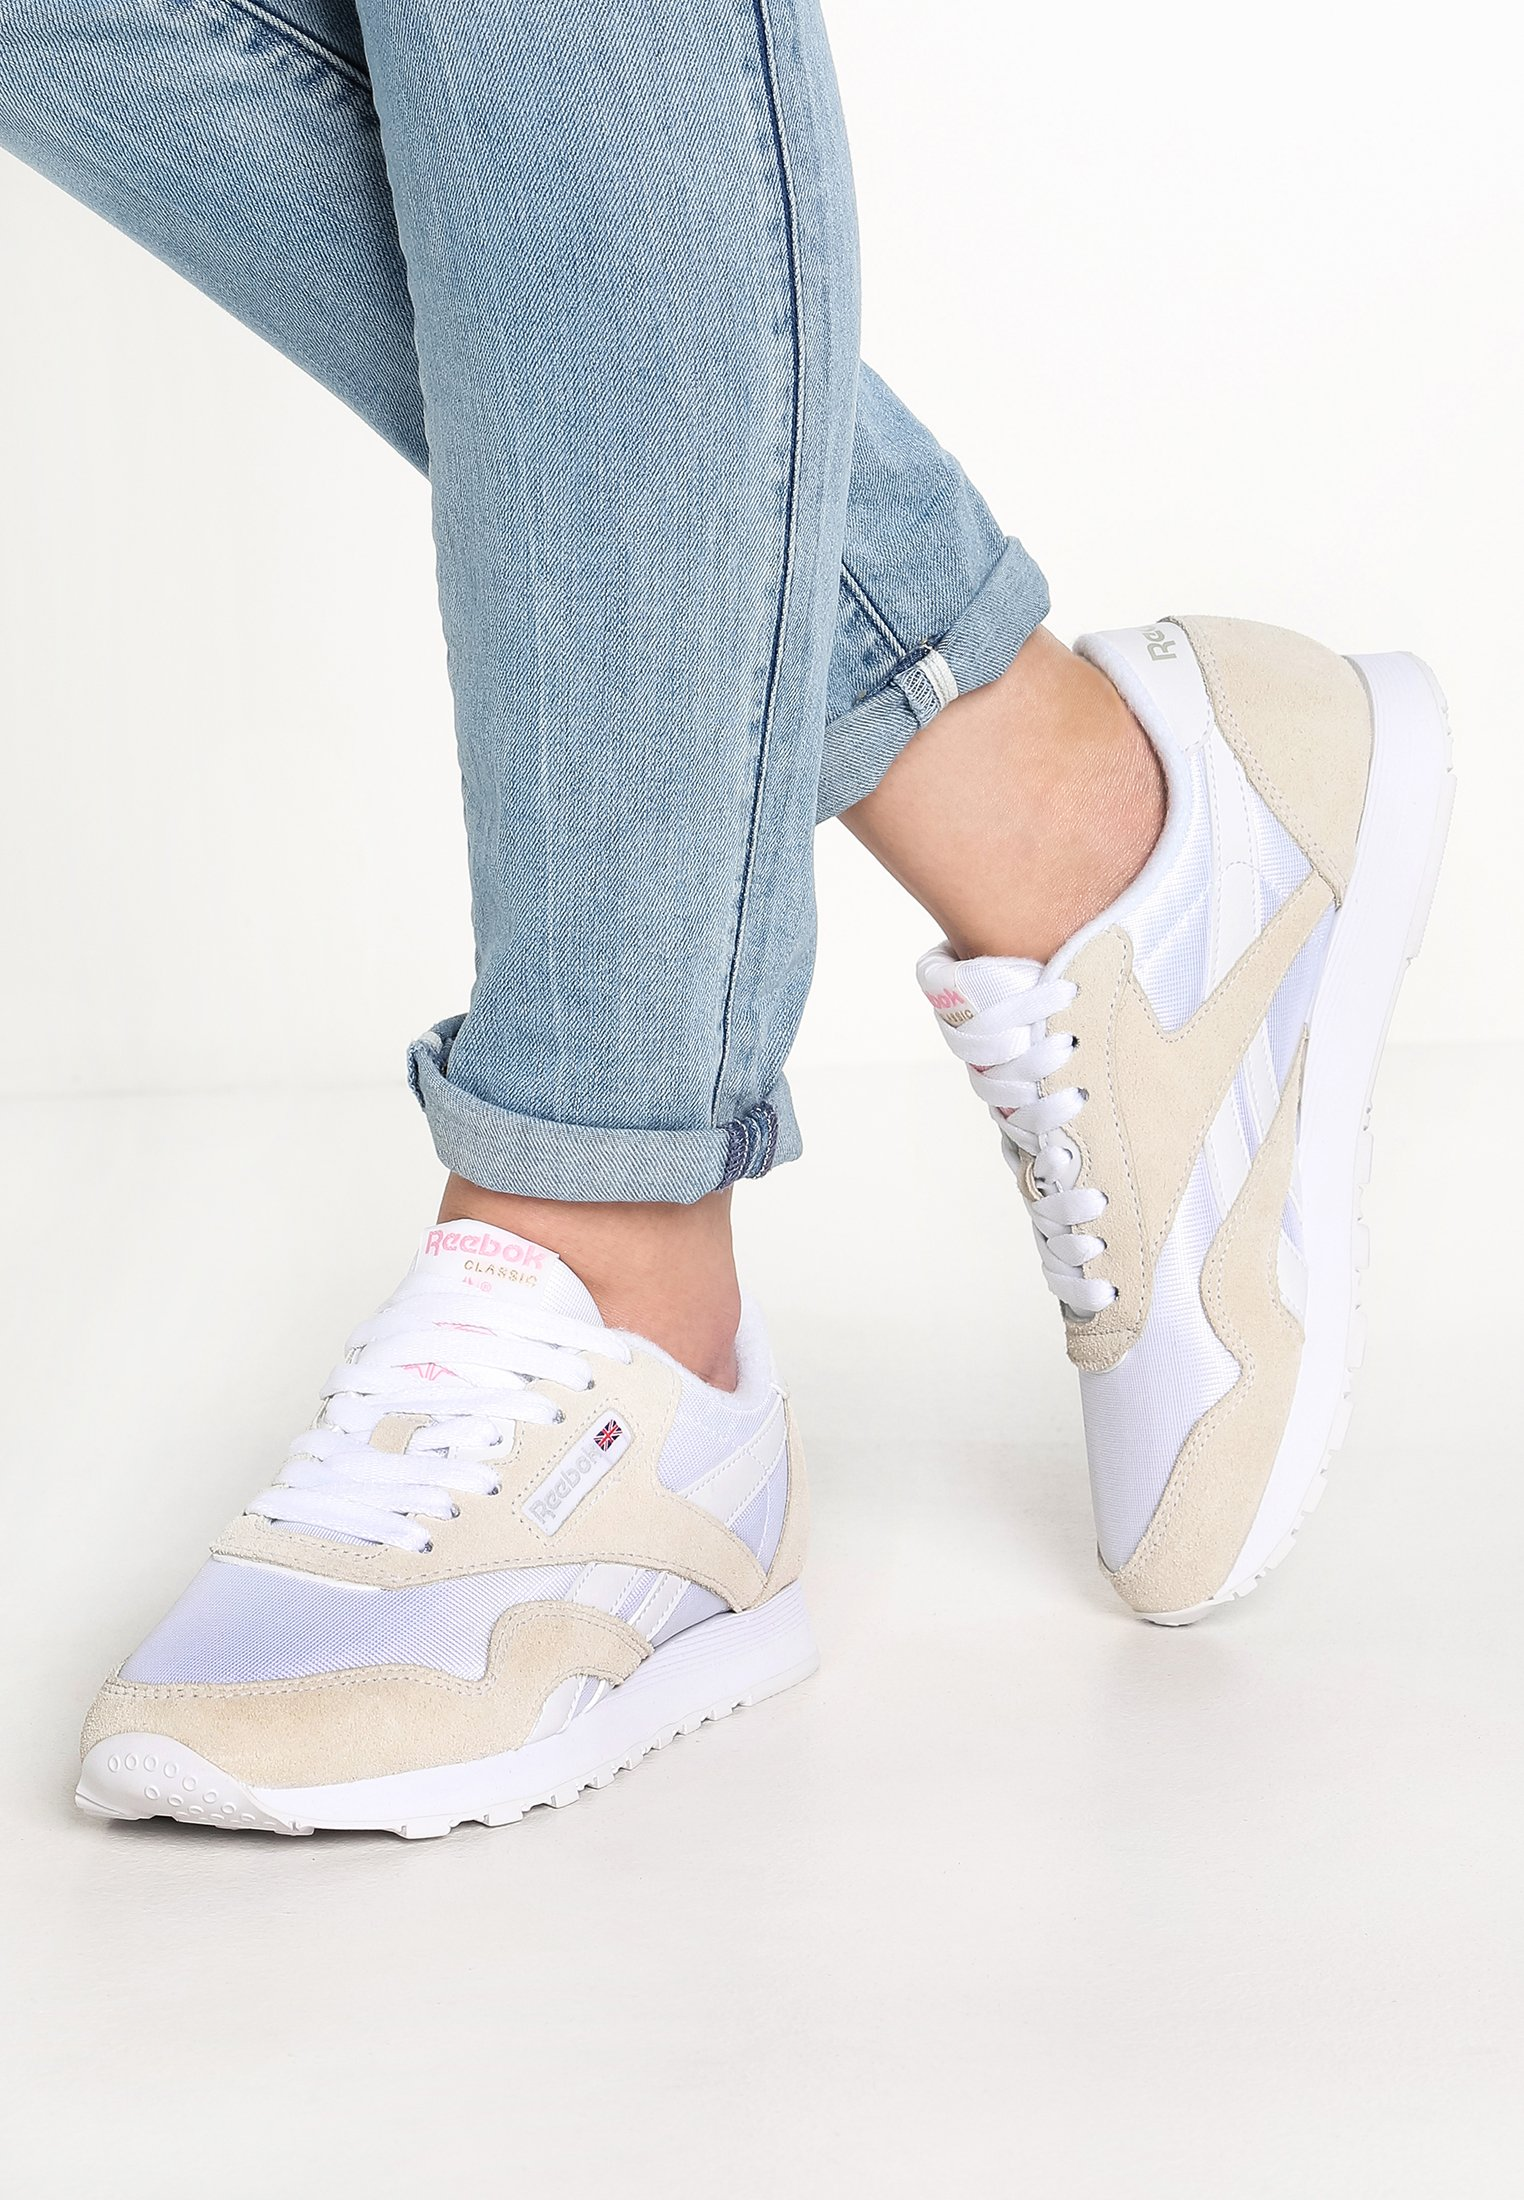 Víspera Malgastar Abandonado  Reebok Classic CLASSIC LEATHER NYLON BREATHABLE UPPER SHOES - Baskets  basses - white/light grey/blanc - ZALANDO.FR